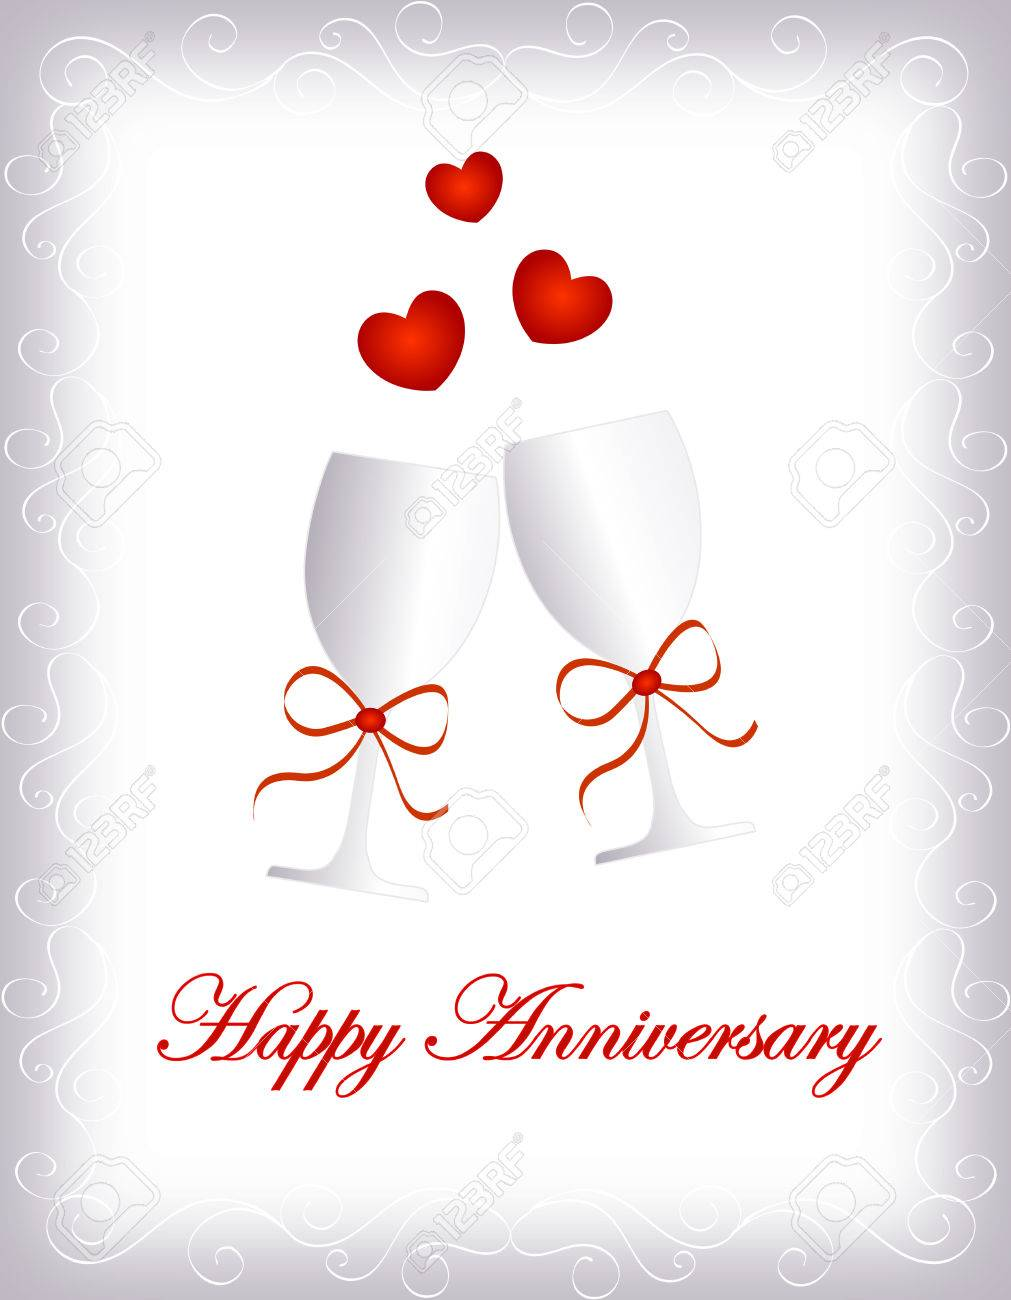 Happy Anniversary Greeting Card With Two Silver Wine Glass With